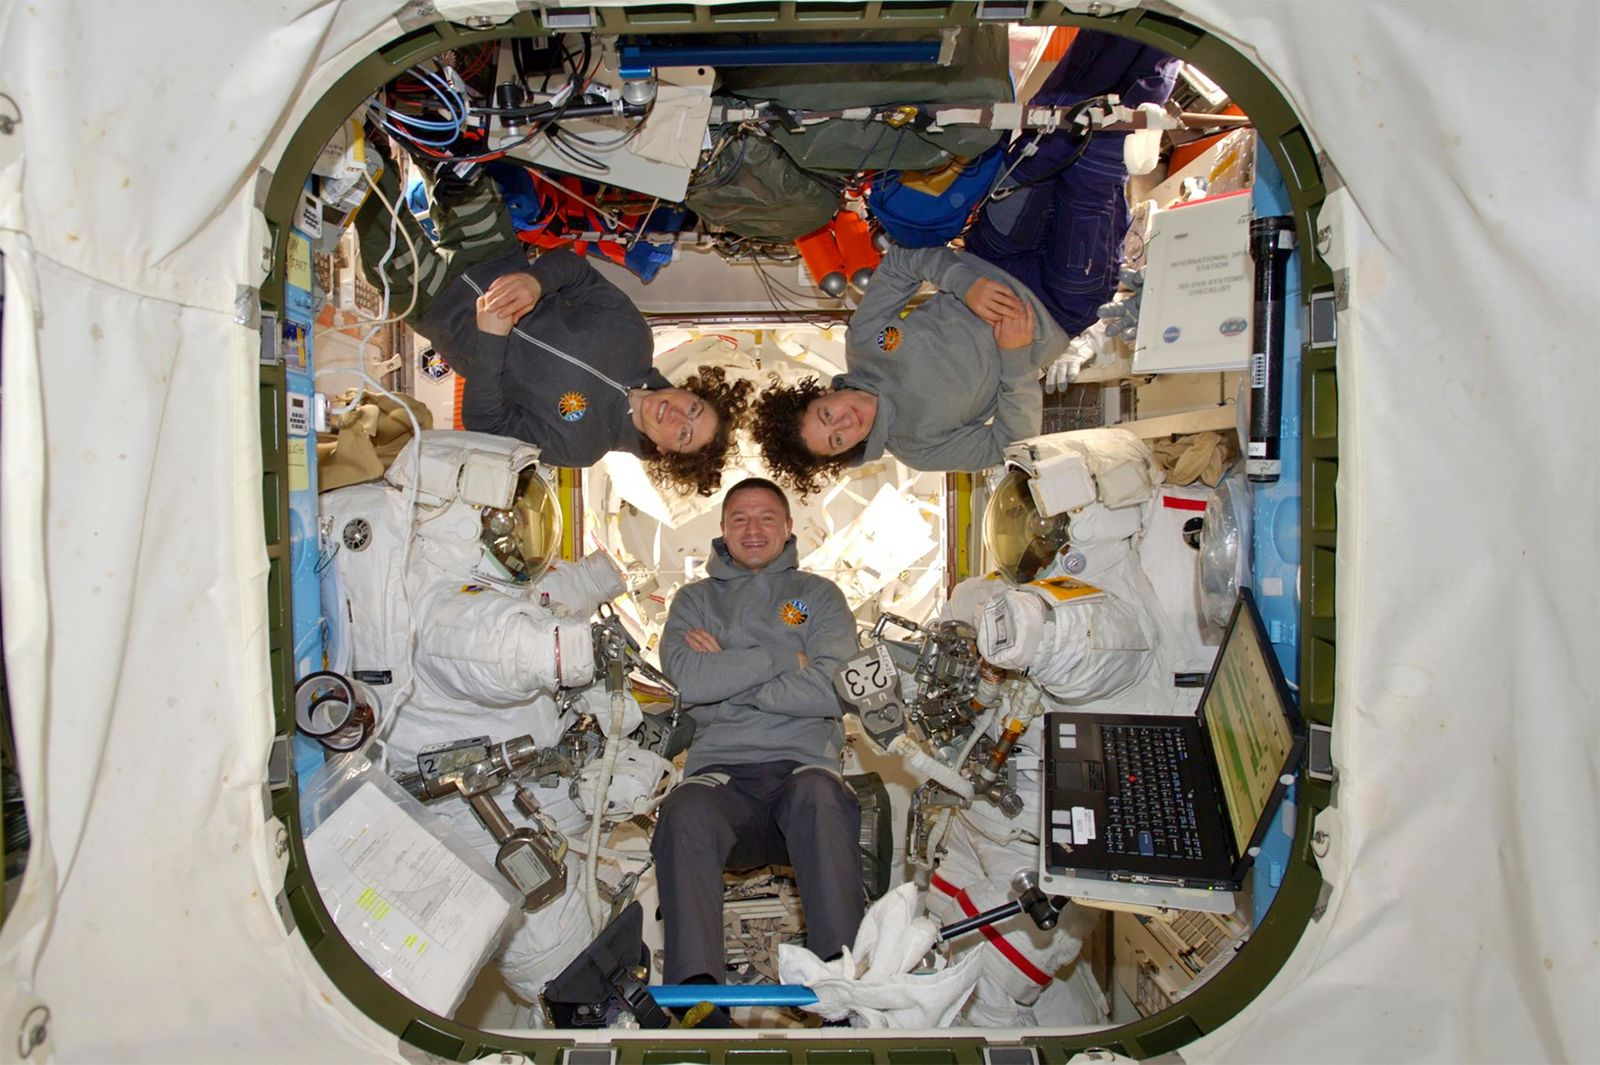 This photo provided by NASA shows astronauts Andrew Morgan with Christina Koch and Jessica Meir at the International Space Station on Friday, Oct. 18, 2019.  The world's first female spacewalking team made history high above Earth on Friday, floating out of the International Space Station to fix a broken part of the power network. As Koch and Meir emerged one by one, it marked the first time in a half-century of spacewalking that a woman floated out without a male crewmate.  (NASA via AP)